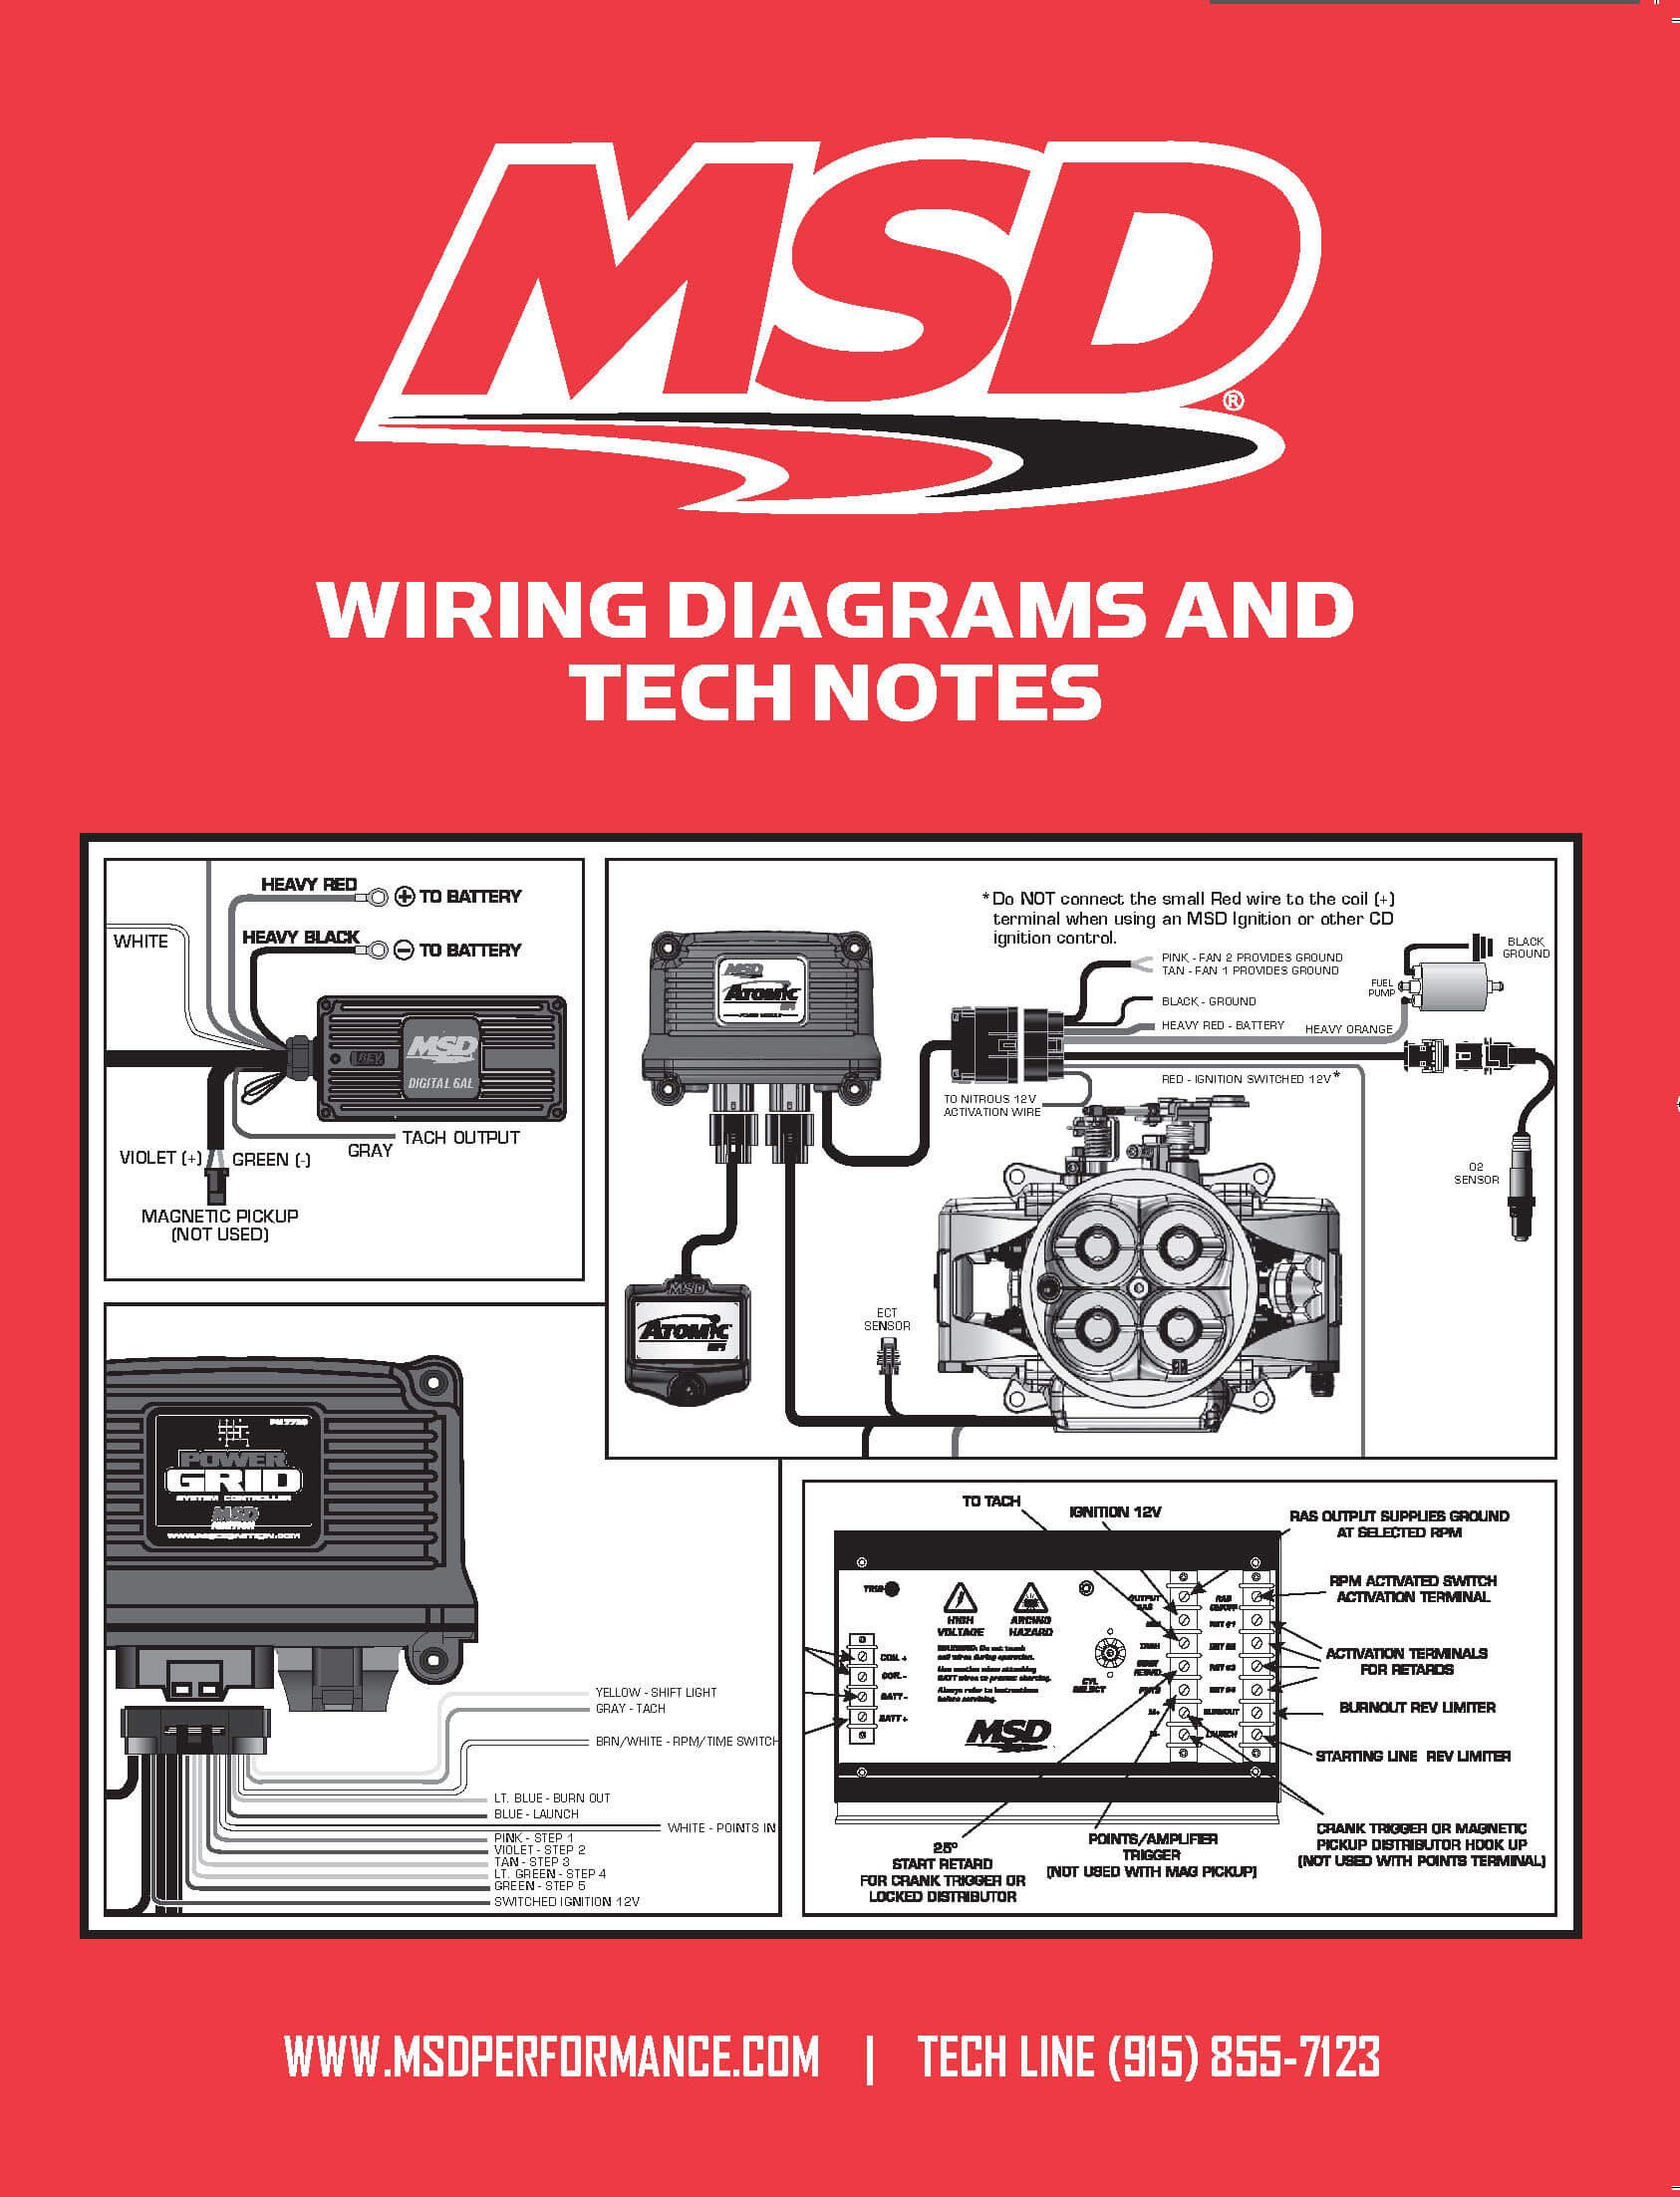 Msd 9615 Wiring Diagrams And Tech Notes Mallory Ignition Diagram Magneto Image